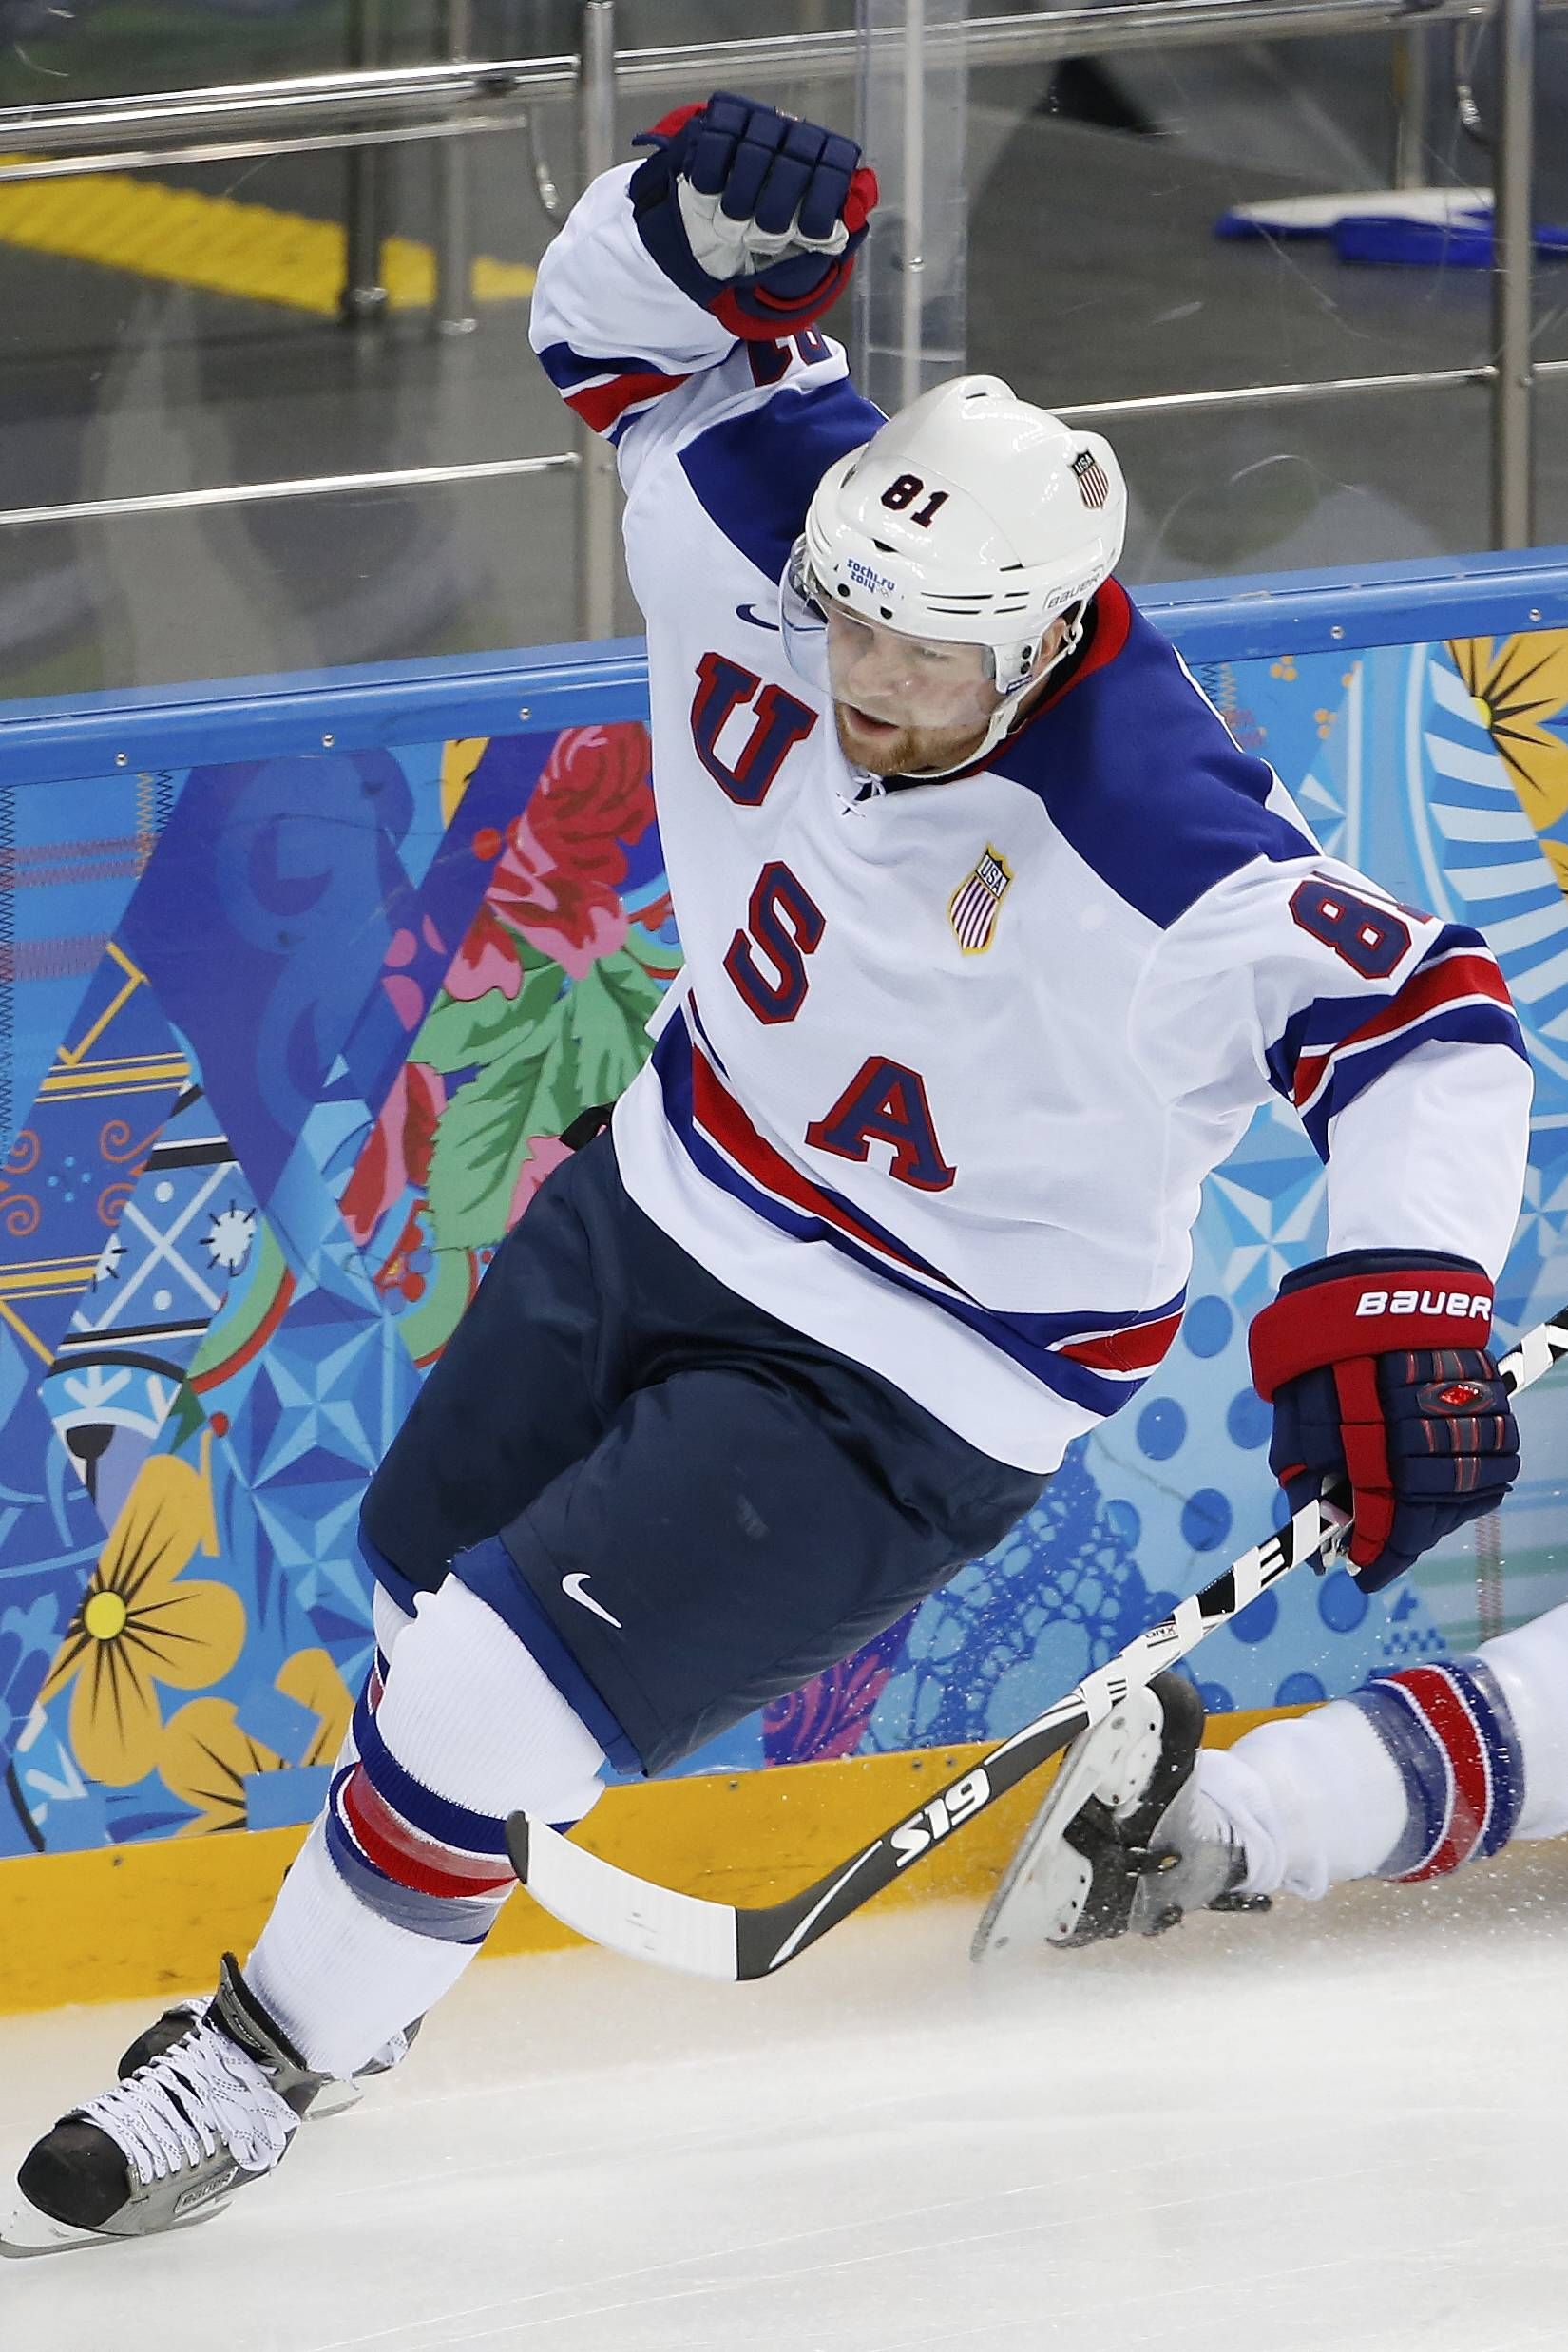 USA forward Phil Kessel celebrates his goal against Slovenia during the 2014 Winter Olympics men's ice hockey game at Shayba Arena Sunday, Feb. 16, 2014, in Sochi, Russia.